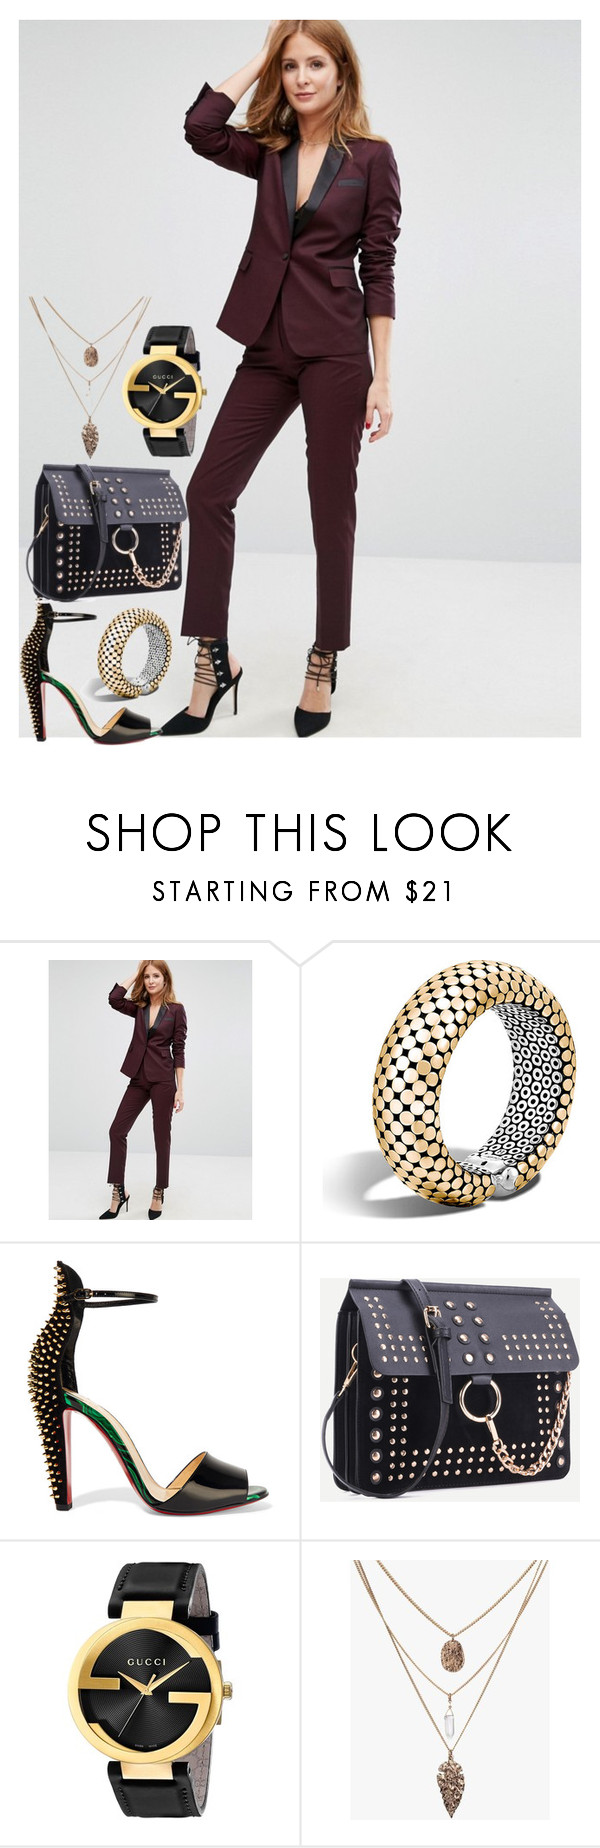 """""""After Work"""" by shirley-de-gannes ❤ liked on Polyvore featuring Millie Mackintosh, John Hardy, Christian Louboutin and Gucci"""